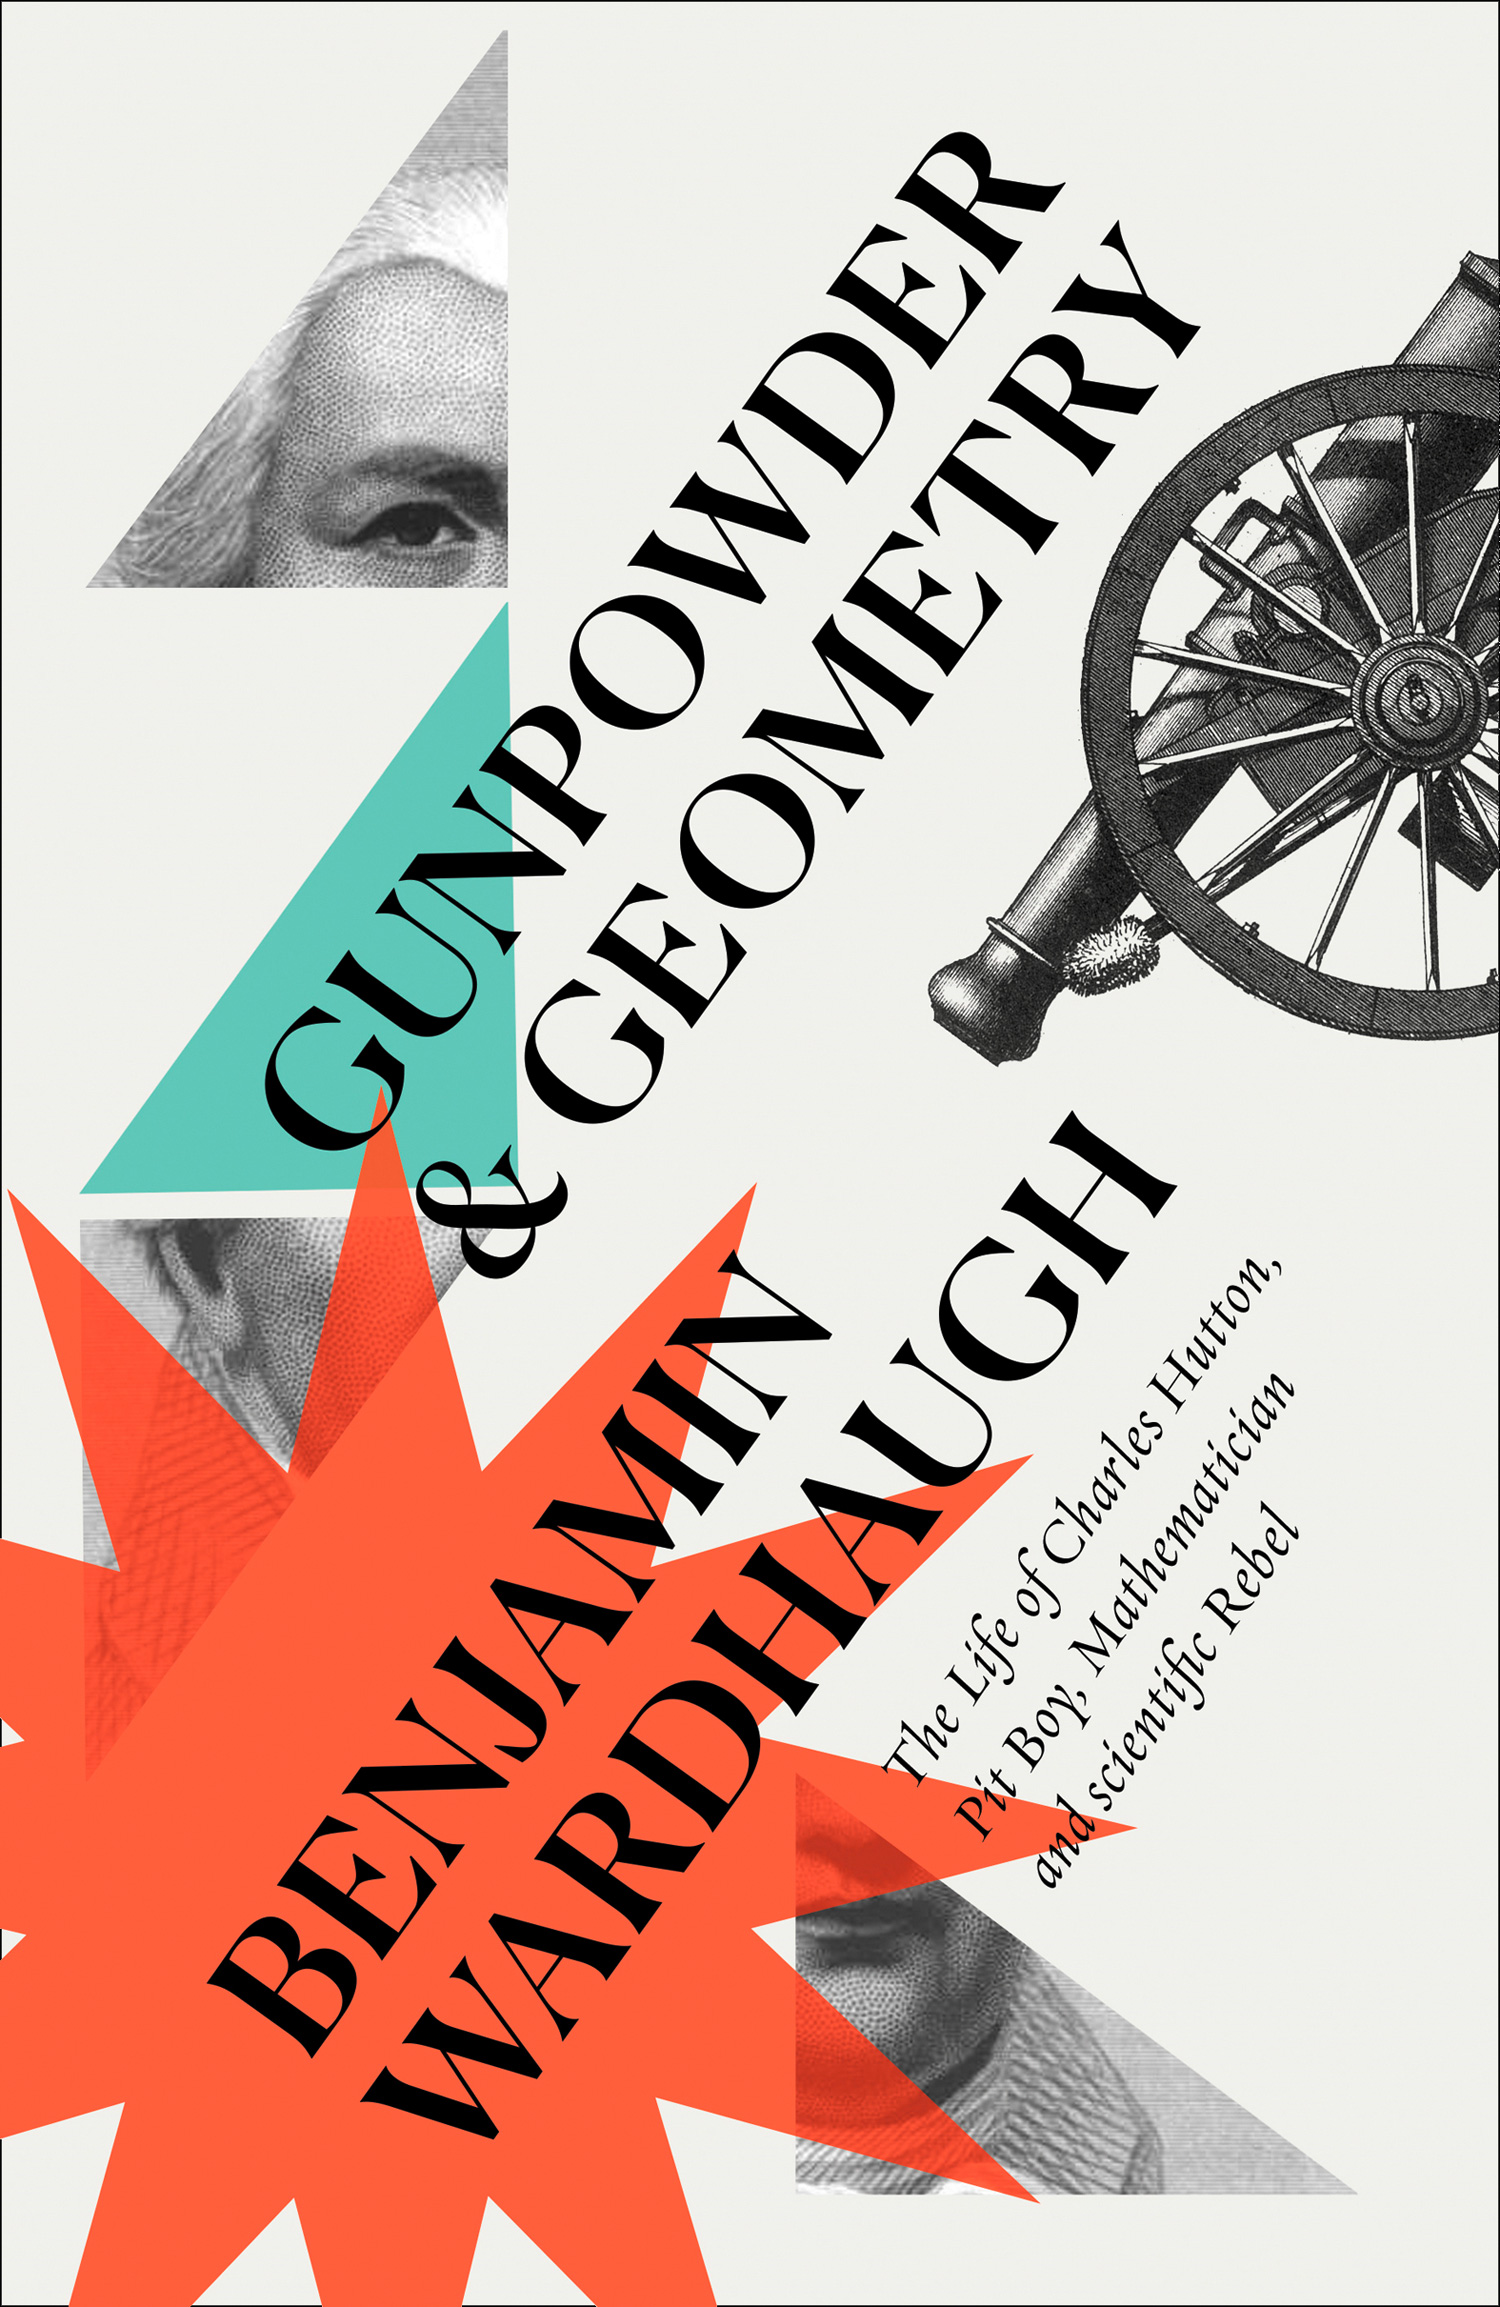 Benjamin Wardhaugh Gunpowder and Geometry: The Life of Charles Hutton, Pit Boy, Mathematician and Scientific Rebel charles napier robinson the british tar in fact and fiction the poetry pathos and humour of the sailor s life